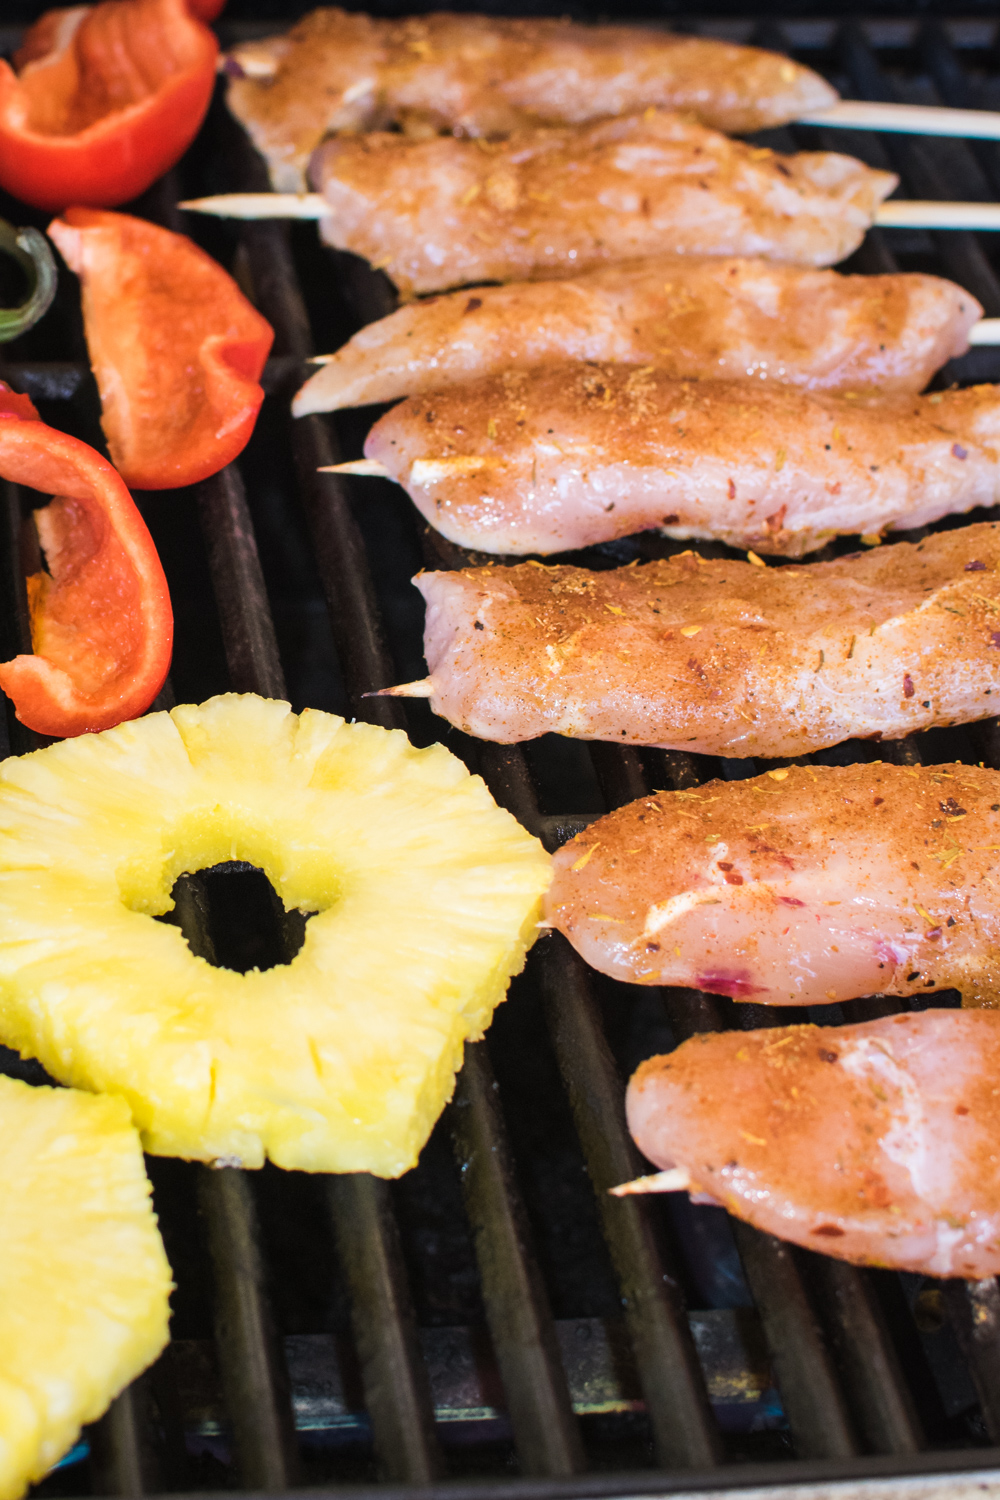 Grilling Jerk Chicken Skewers with pineapple